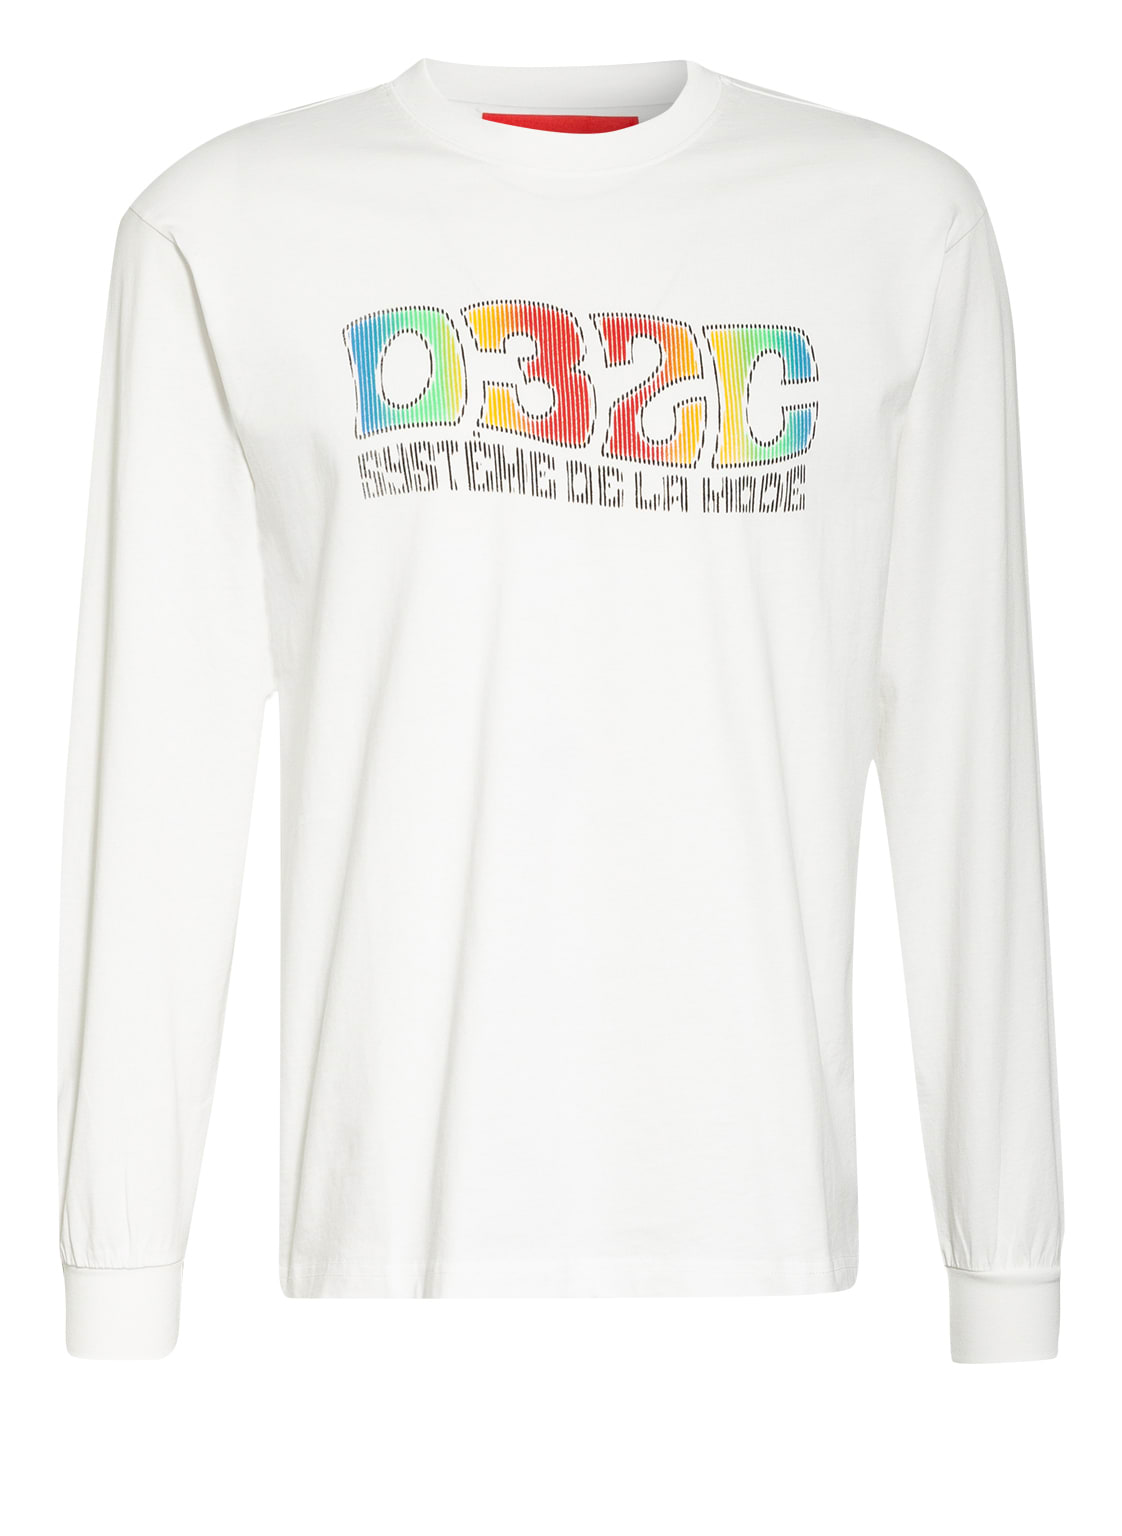 Image of 032c Longsleeve Système weiss